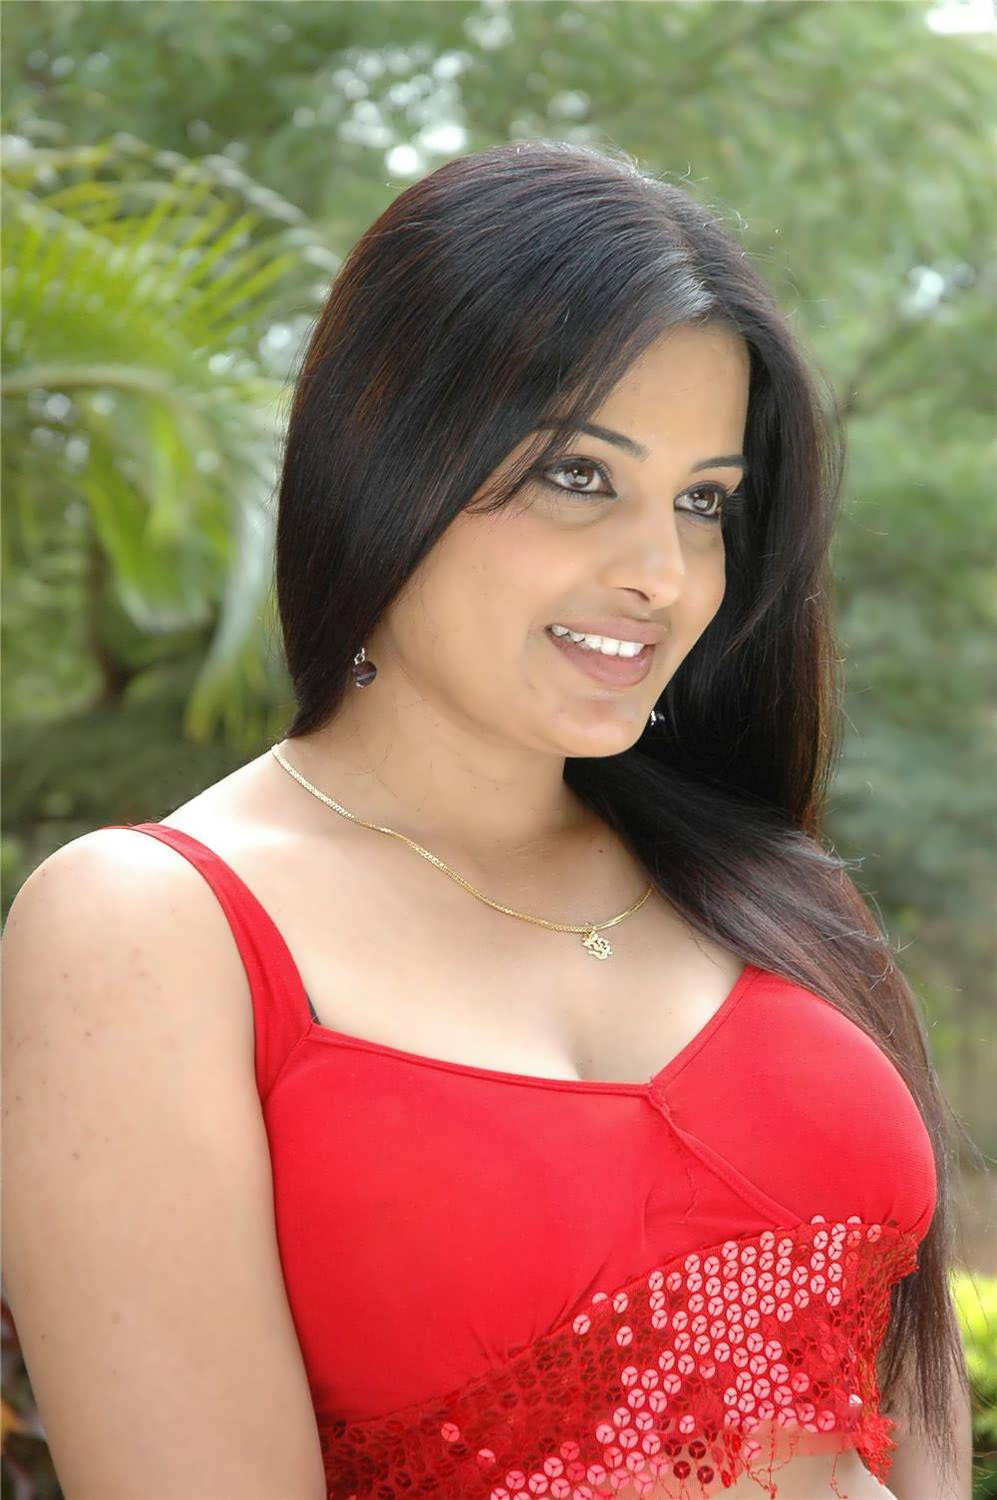 Actress In Red Saree: Rupa Bhabhi Sexy Navel Boobbbsss Thighs